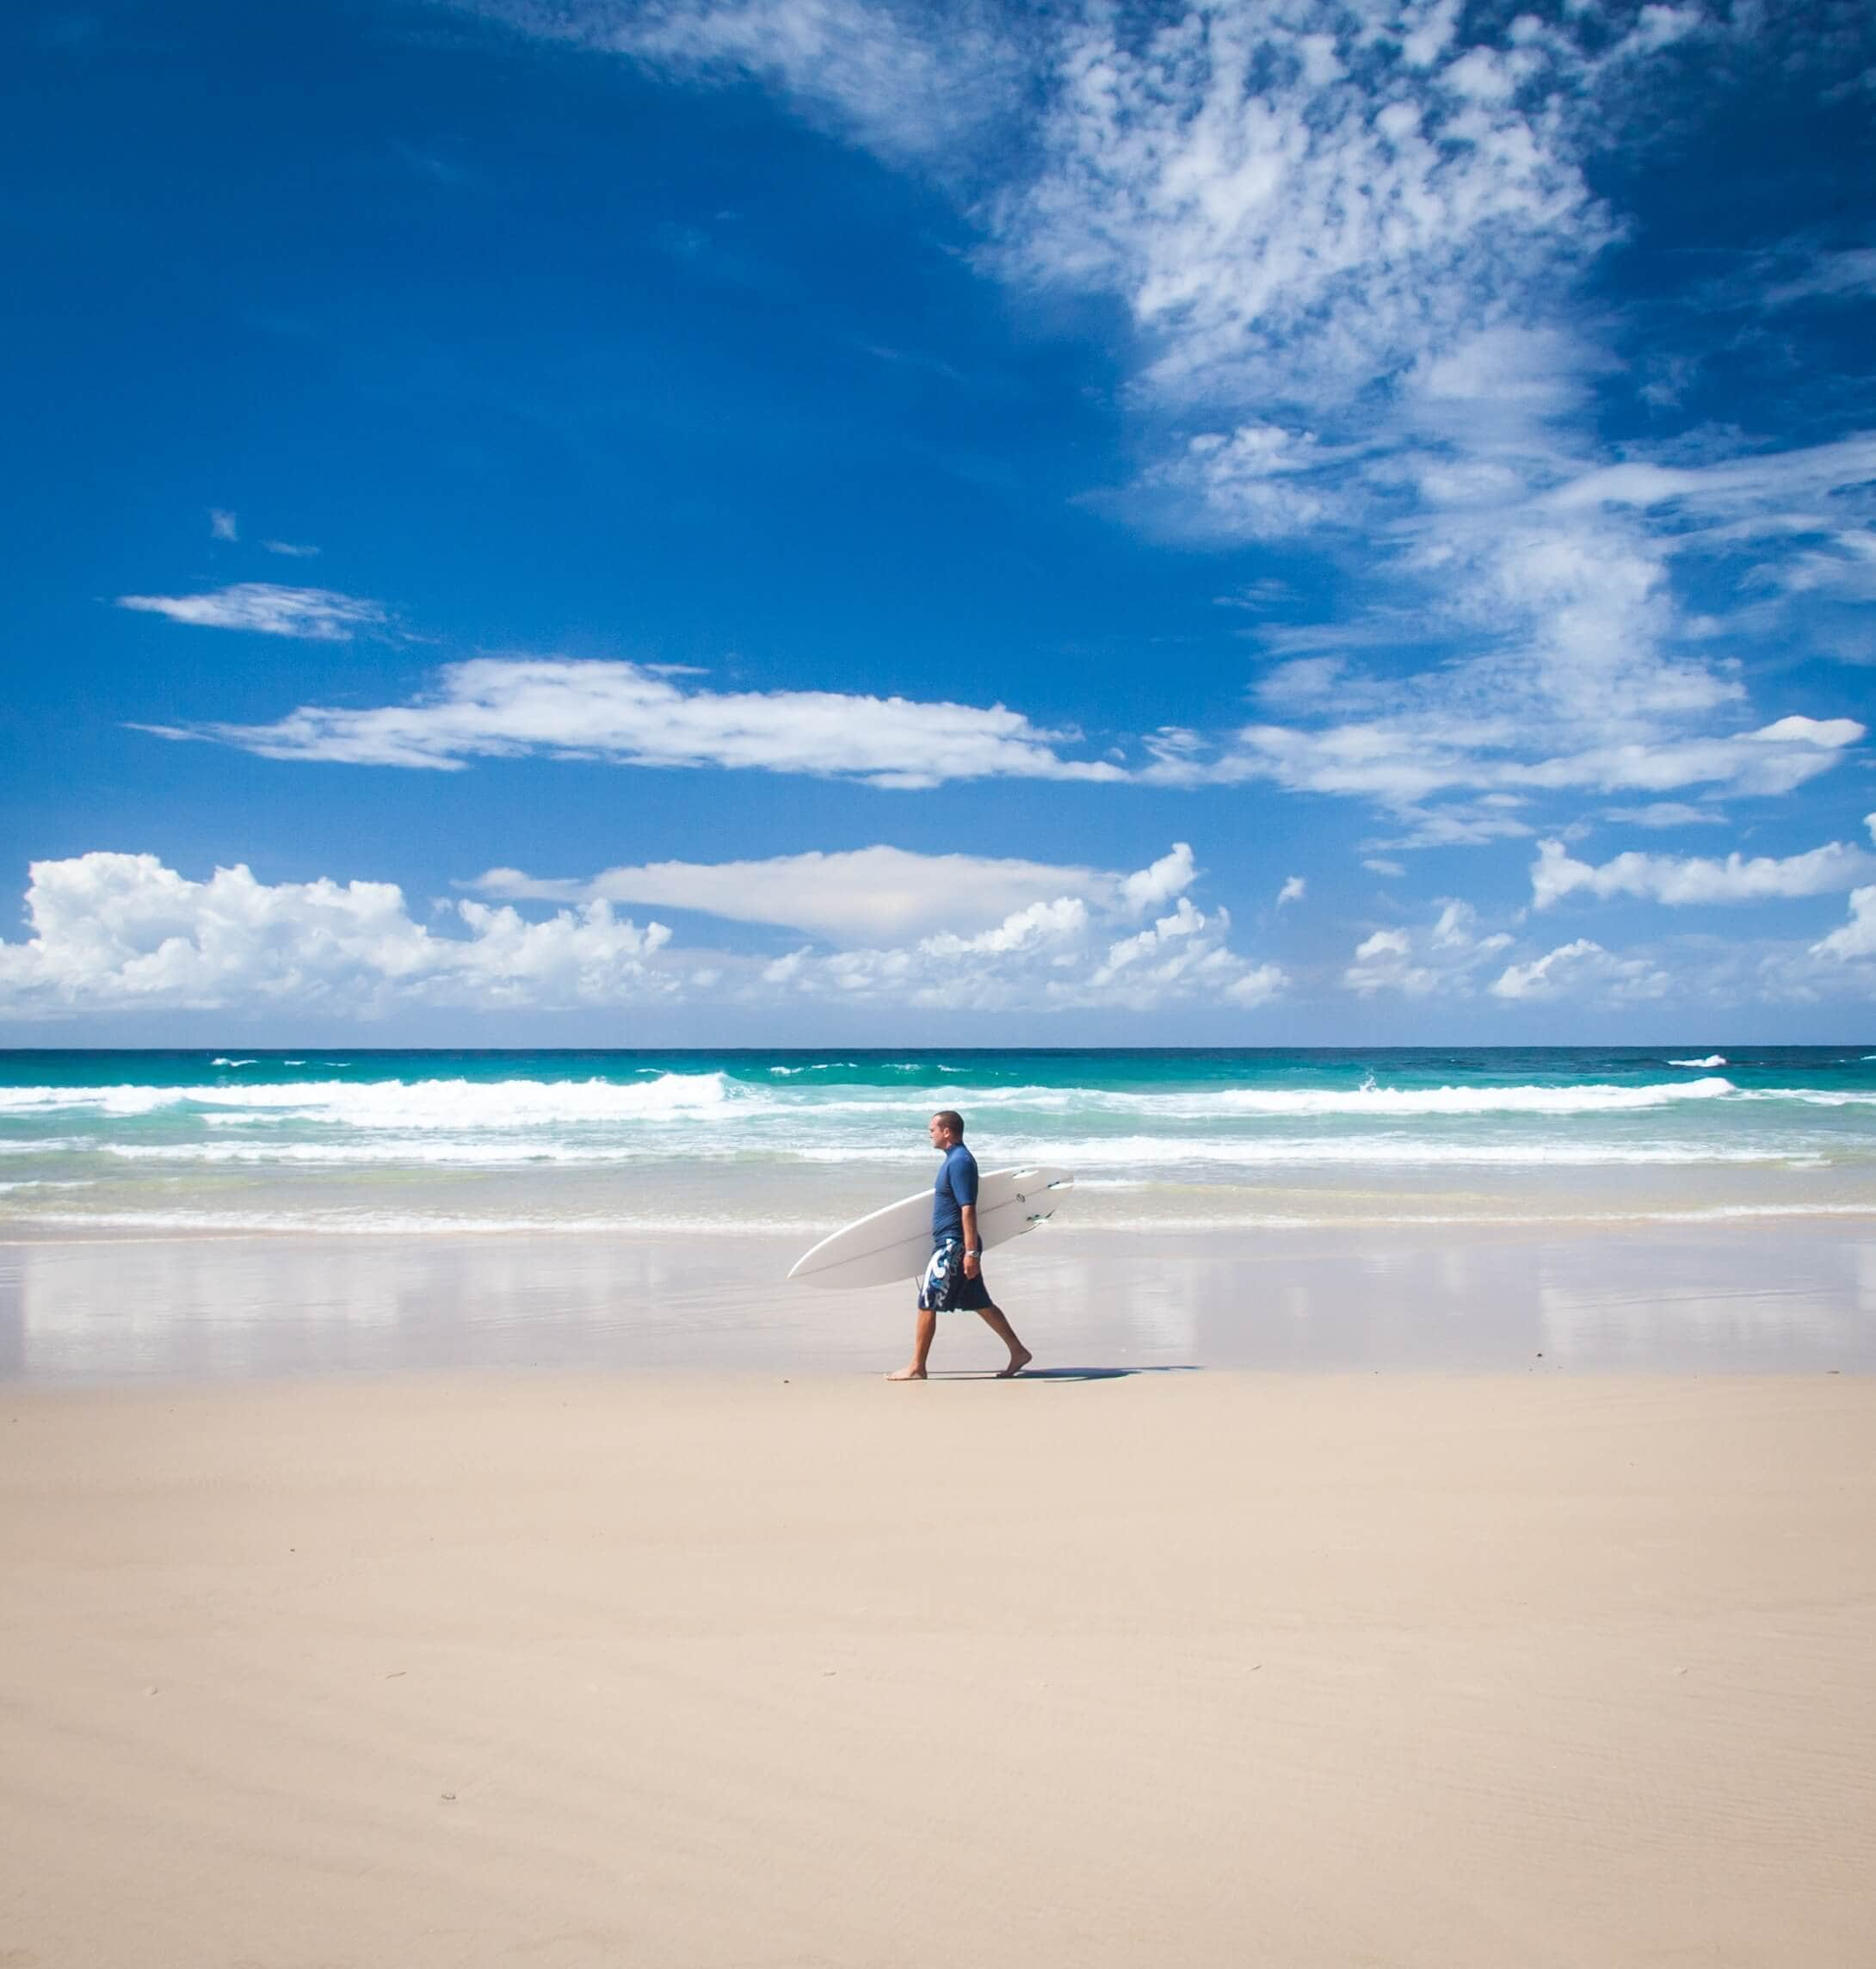 Moving To Australia? 110+ Things You Need To Know Before Moving Over